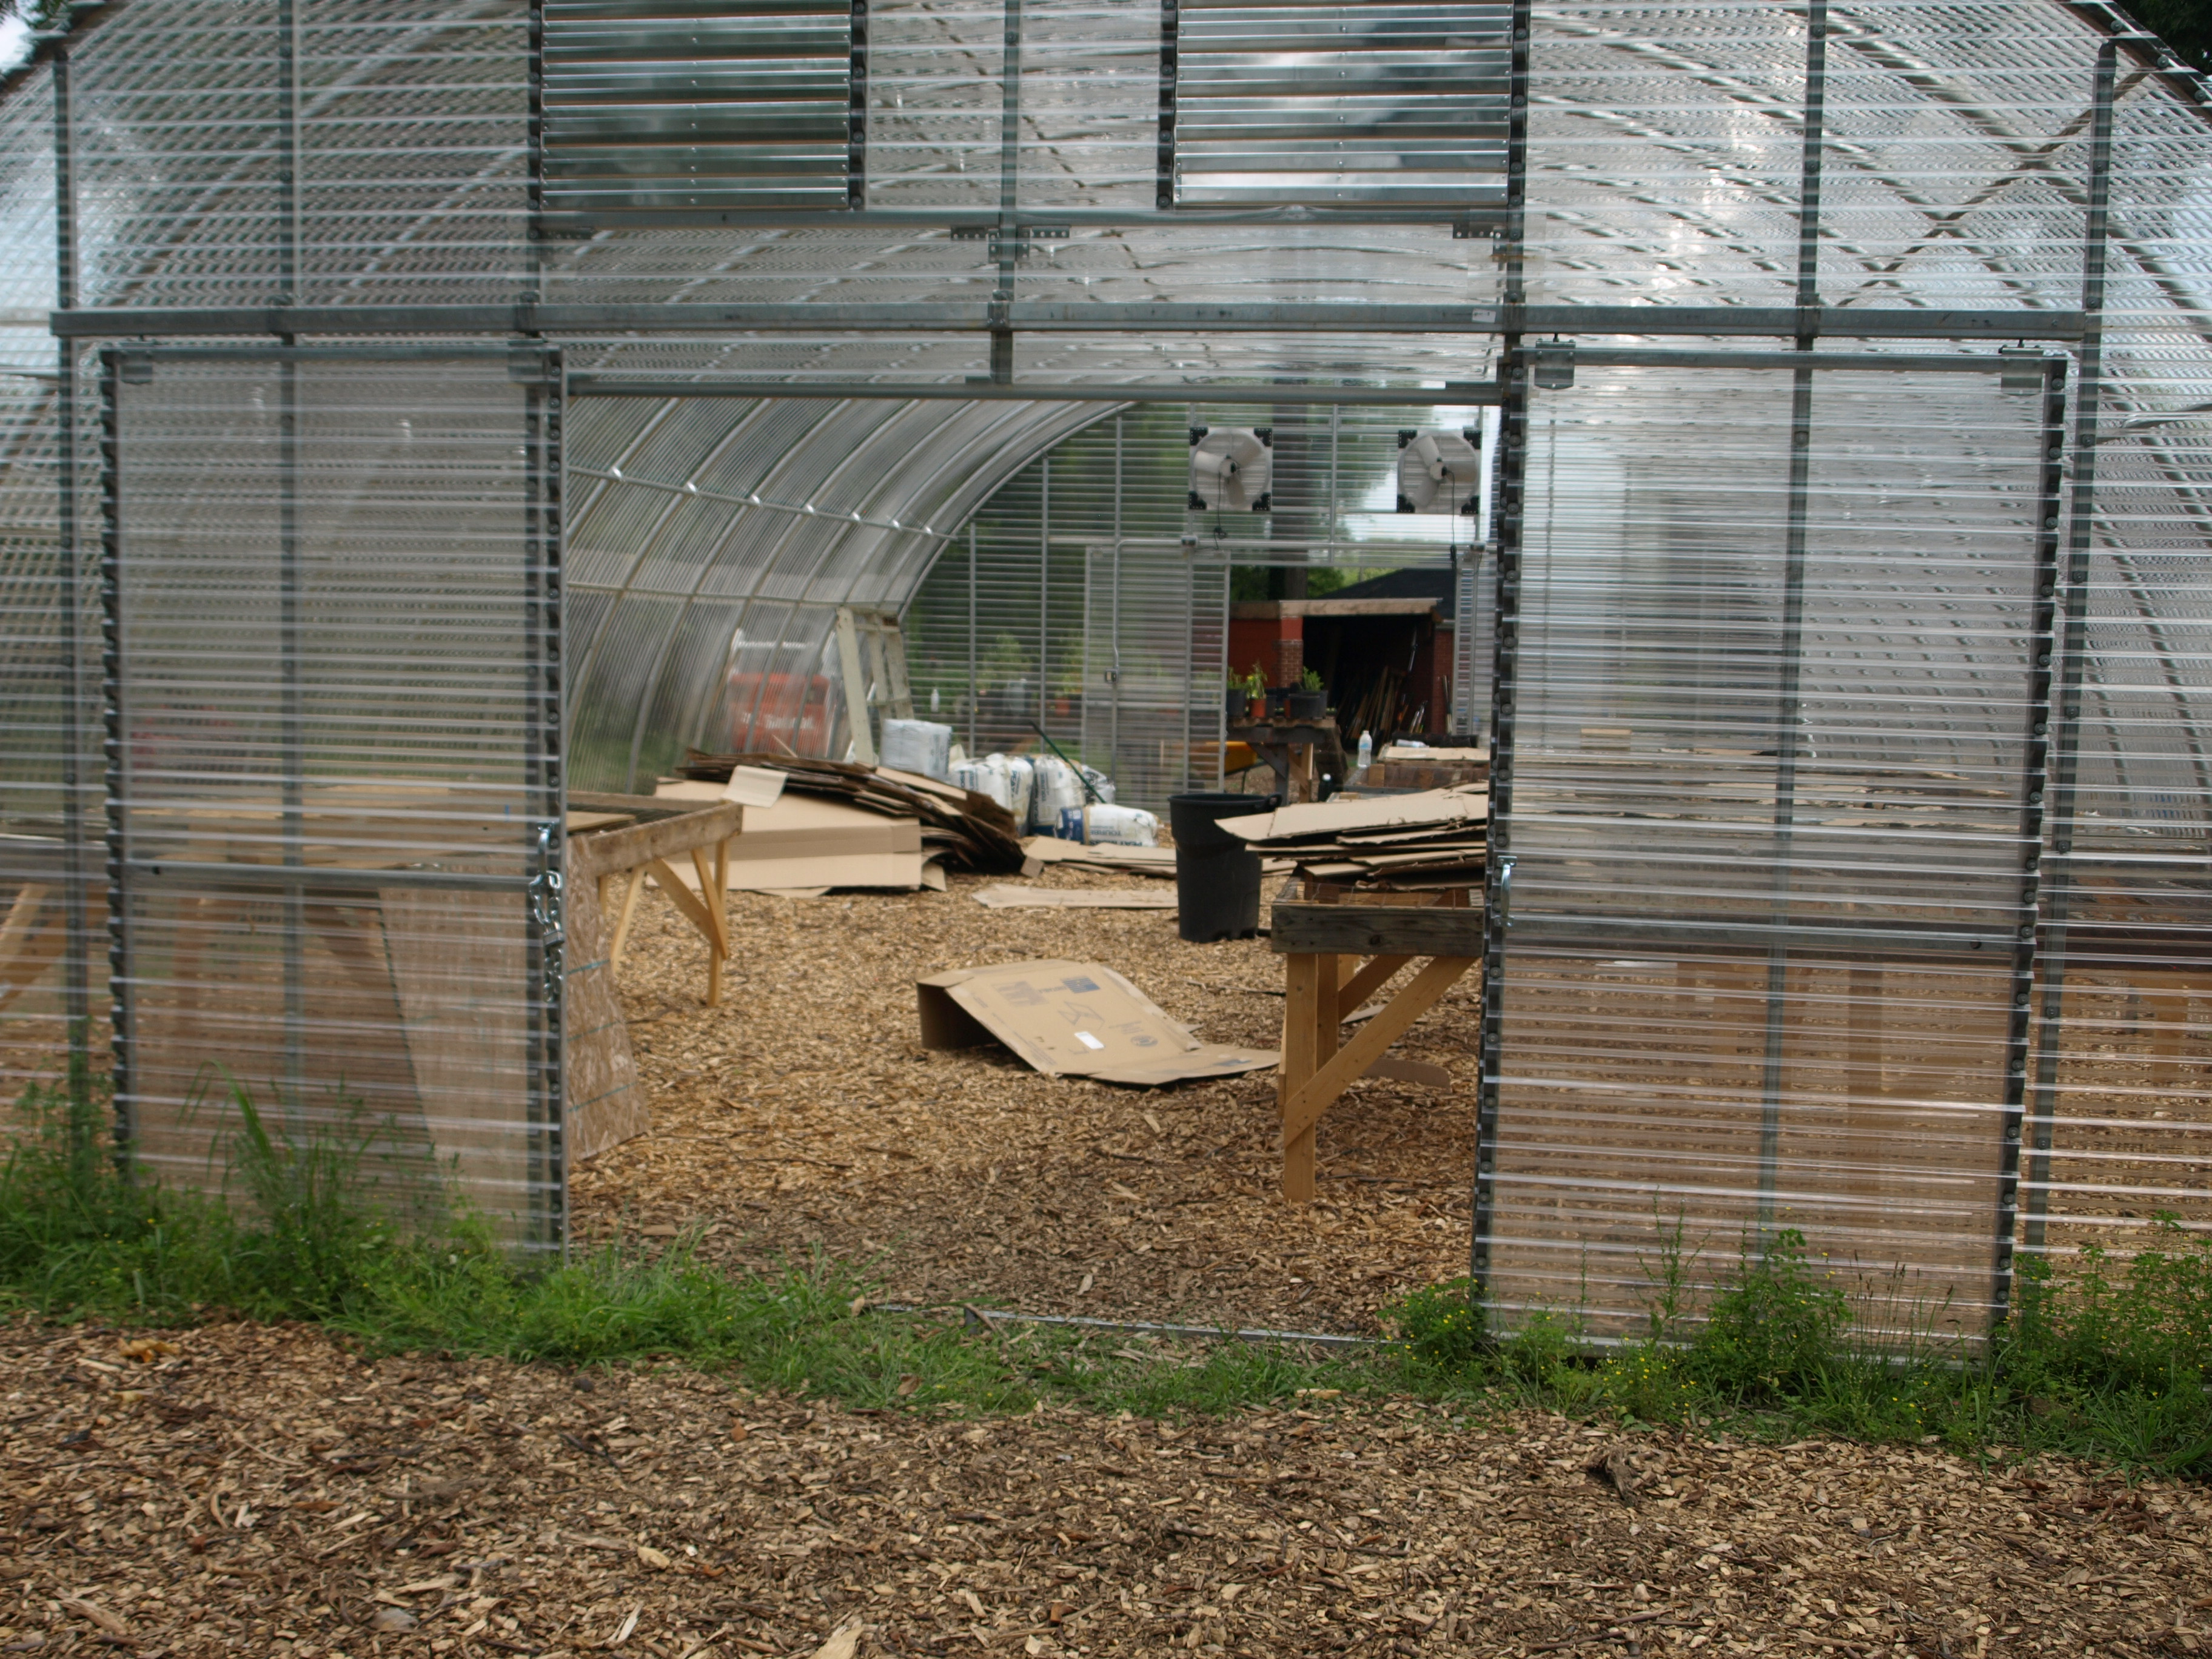 Youngstown urban farming